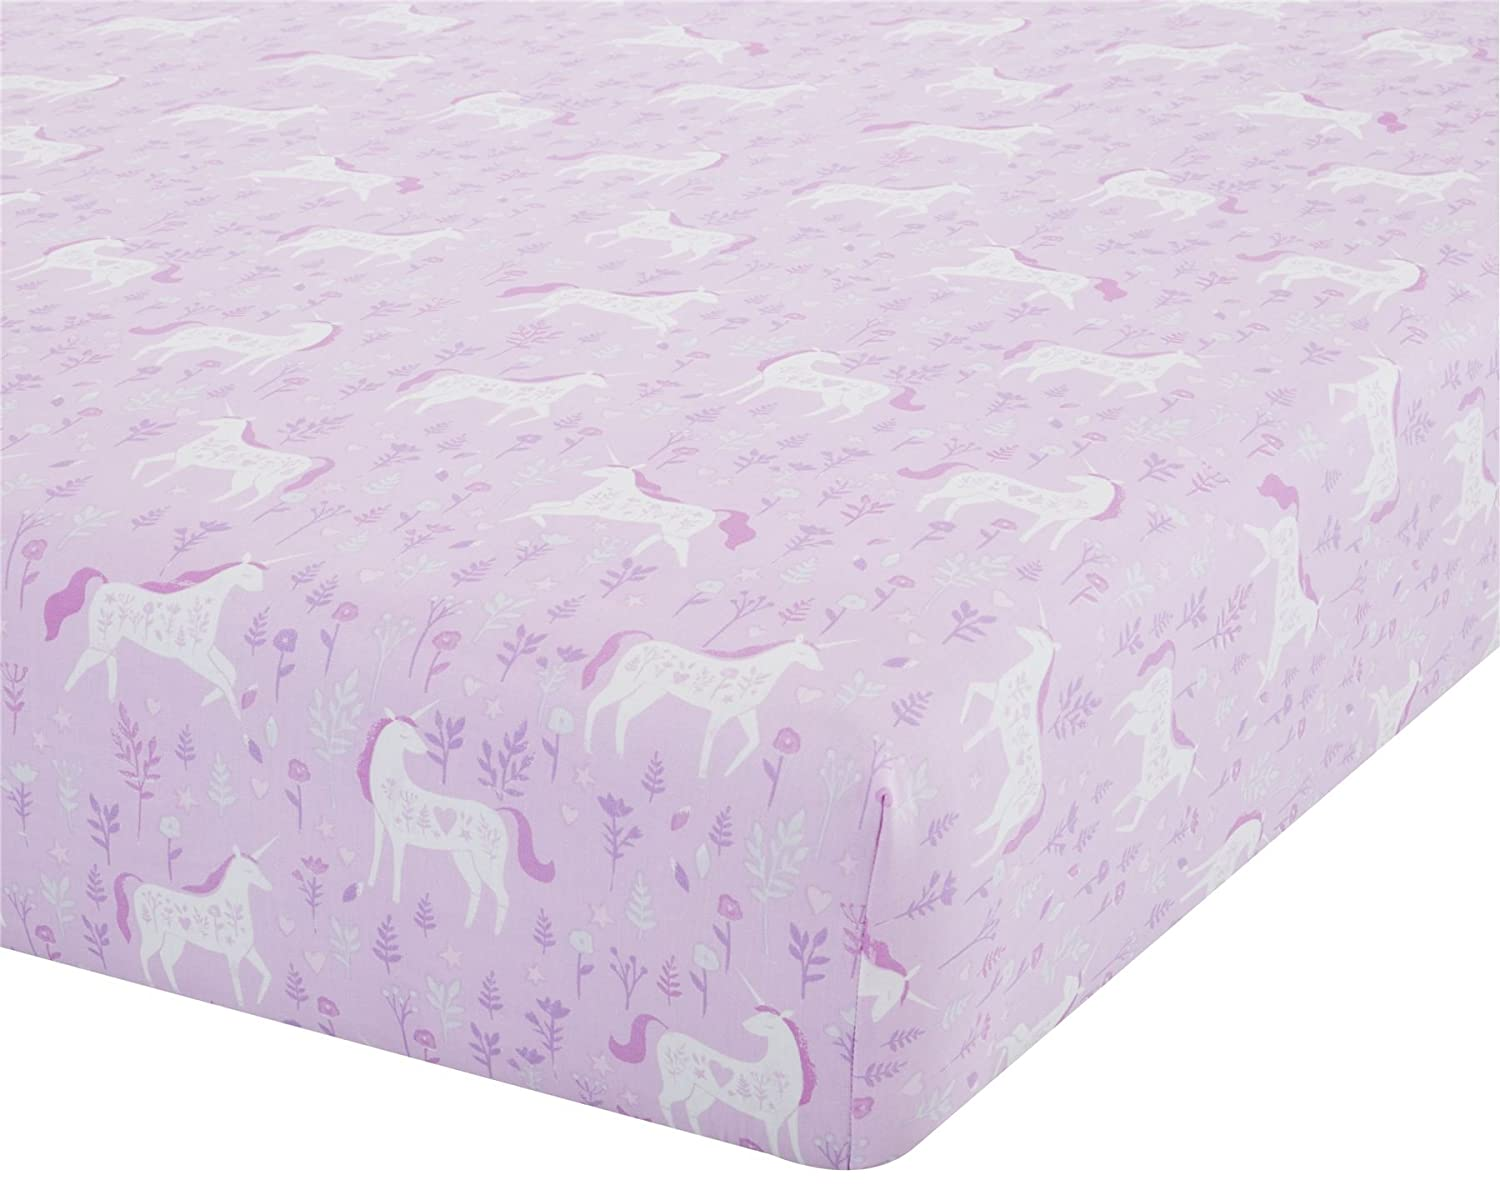 UNICORNS FLOWERS LEAVES PINK WHITE CANADIAN TWIN (90CM X 190CM + 25CM - UK SINGLE) COTTON BLEND FITTED SHEET